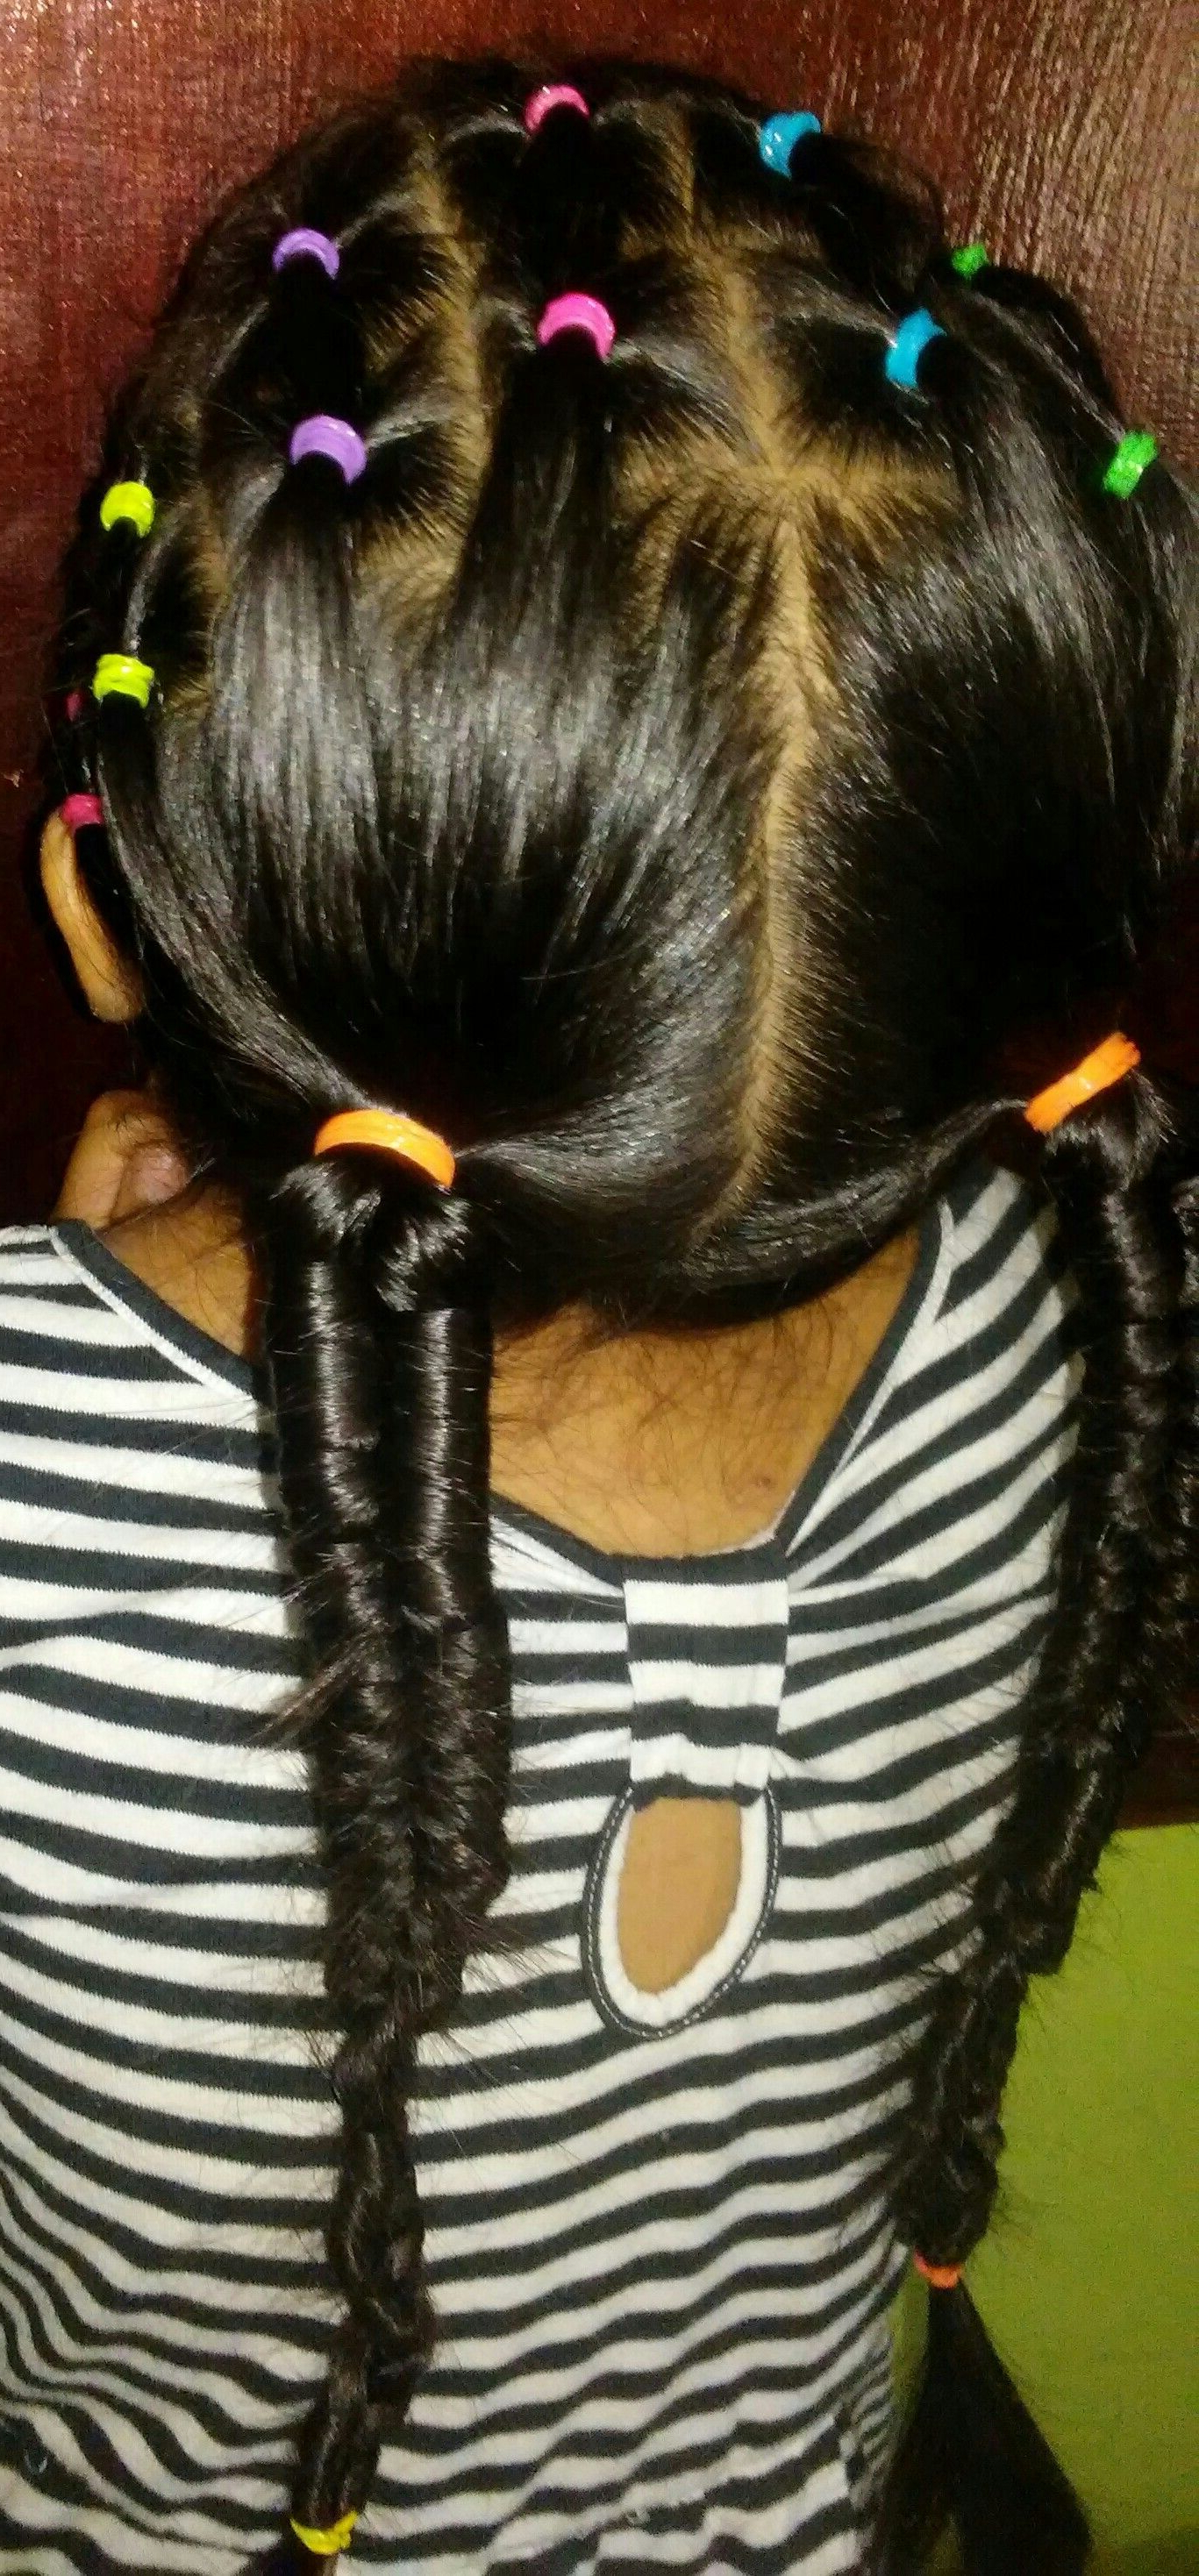 Most Recent Infinity Braid Ponytail Hairstyles With Regard To 2 Infinity Braid Ponytails Hairstyle Added With Some Colorful (View 15 of 20)